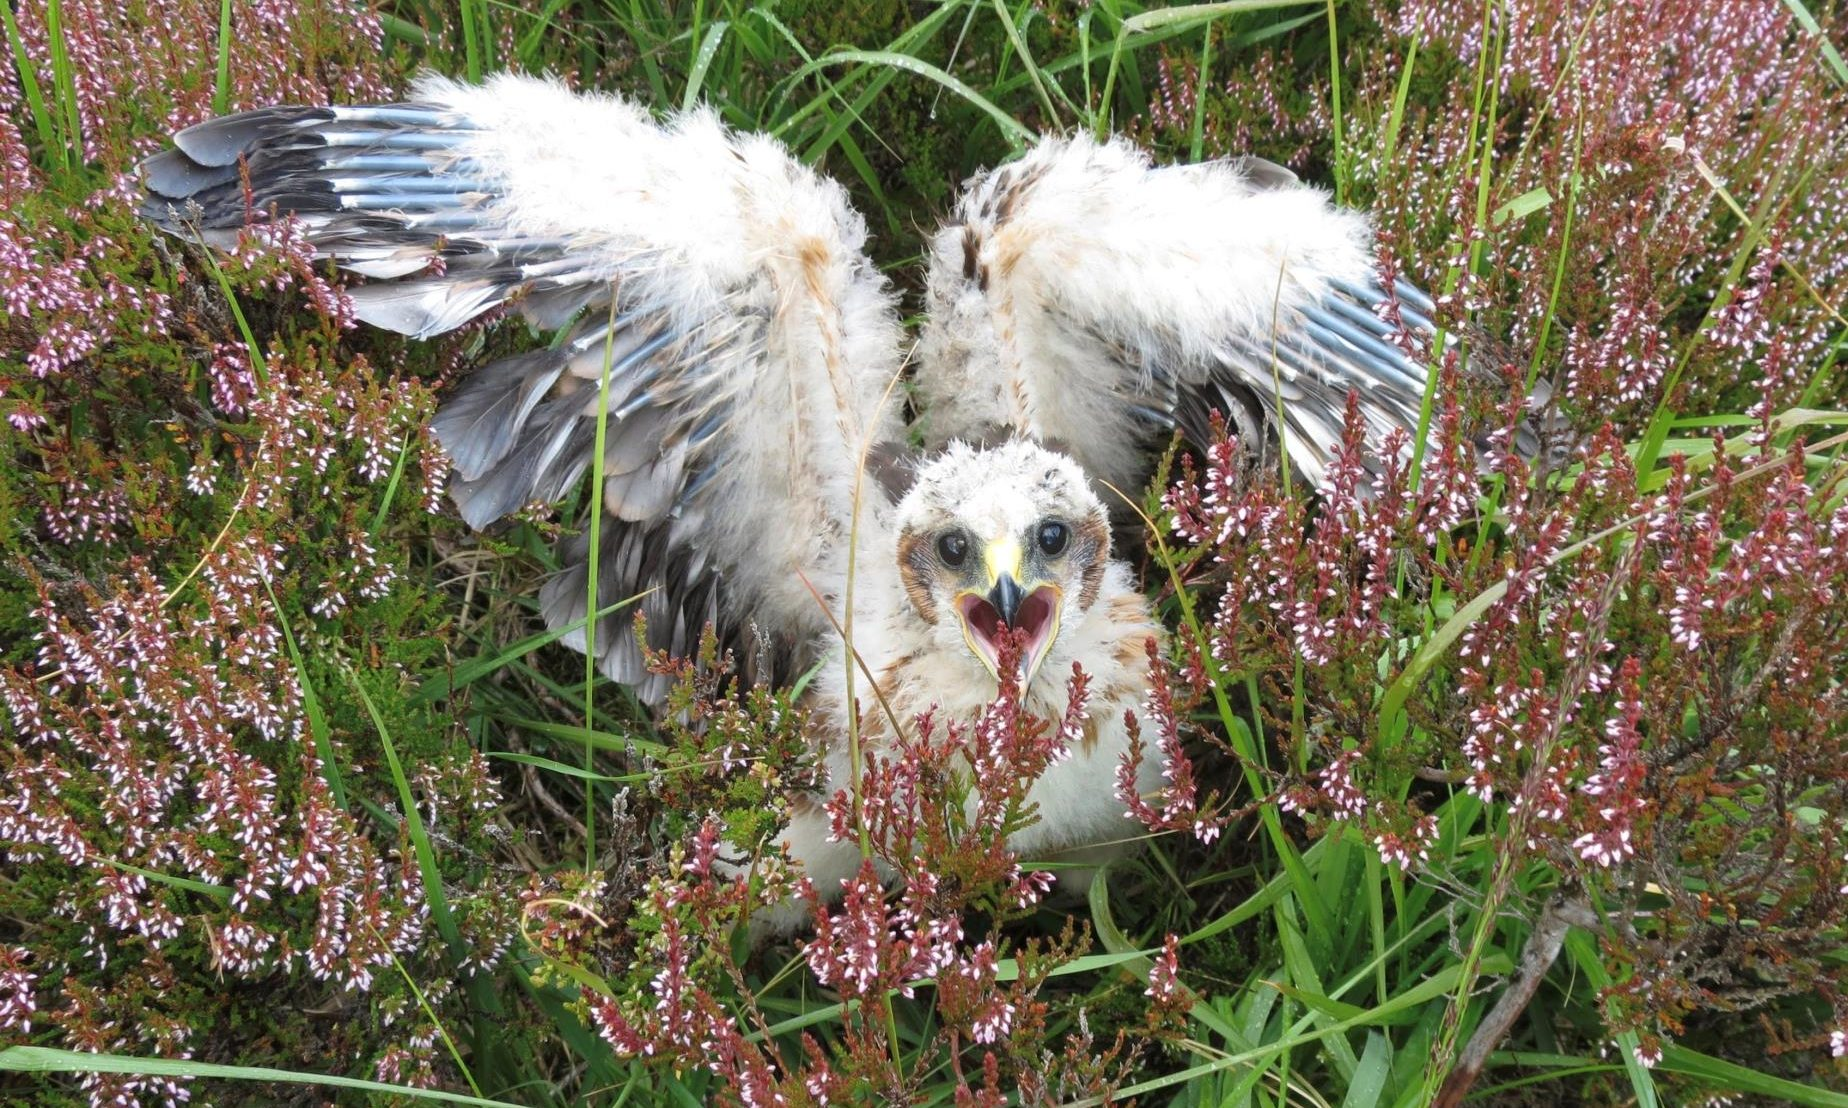 Hen Harrier chicks have successfully fledged in the Angus Glens. Pic: Mike Groves.